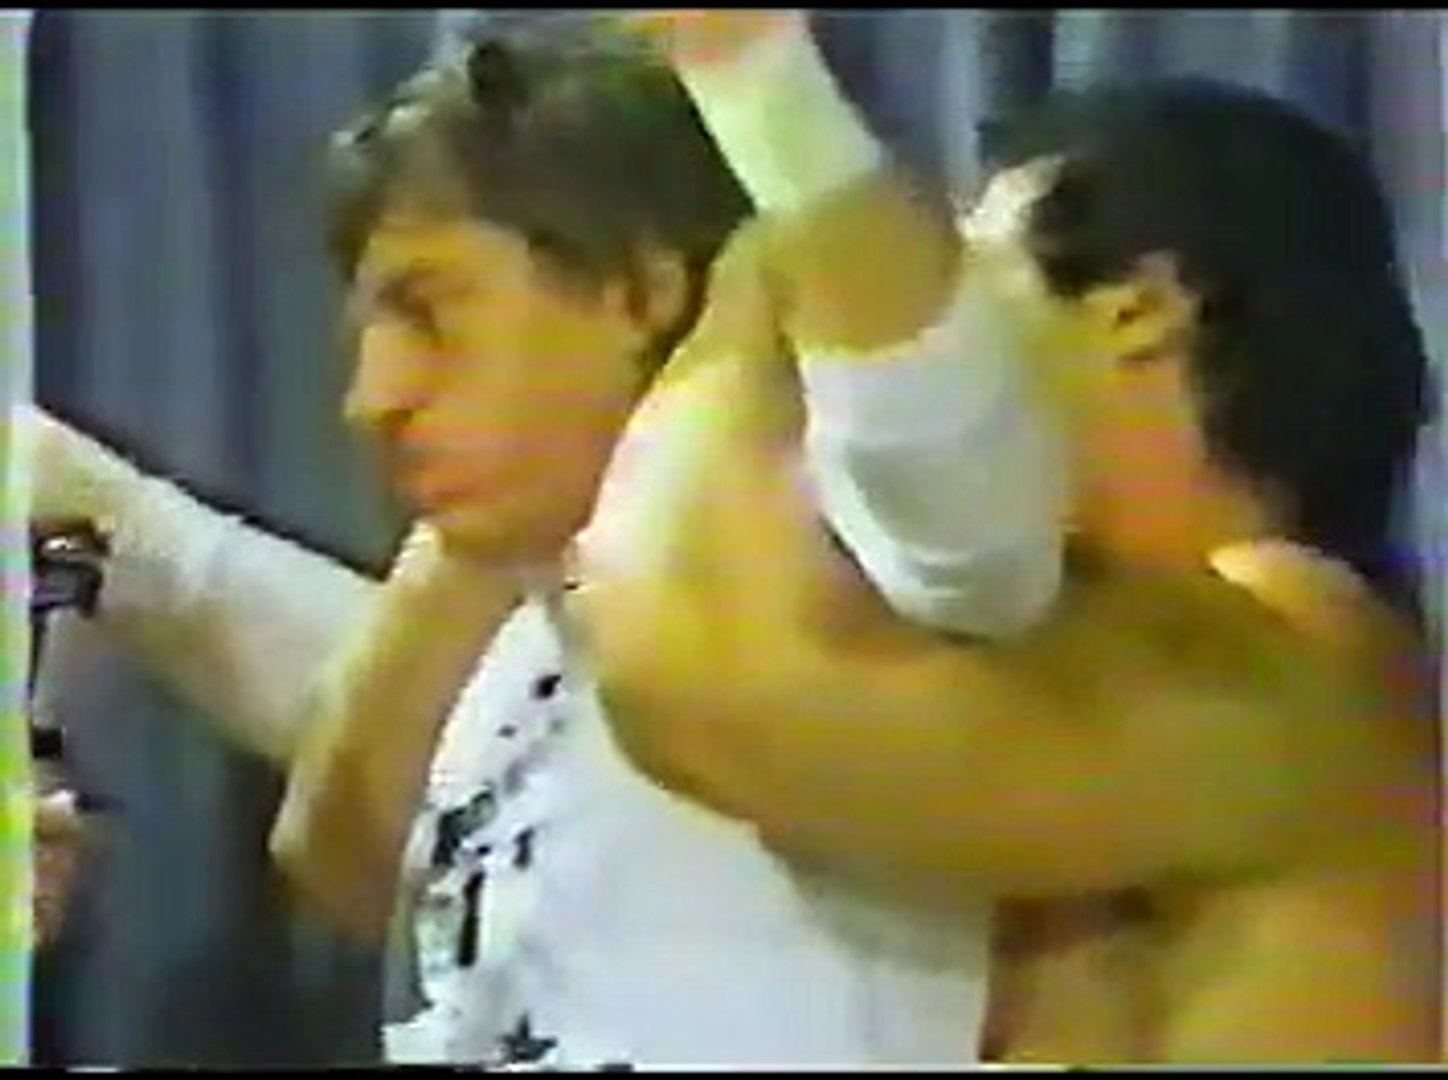 Rowdy Roddy Piper confronts The Grappler and Styles